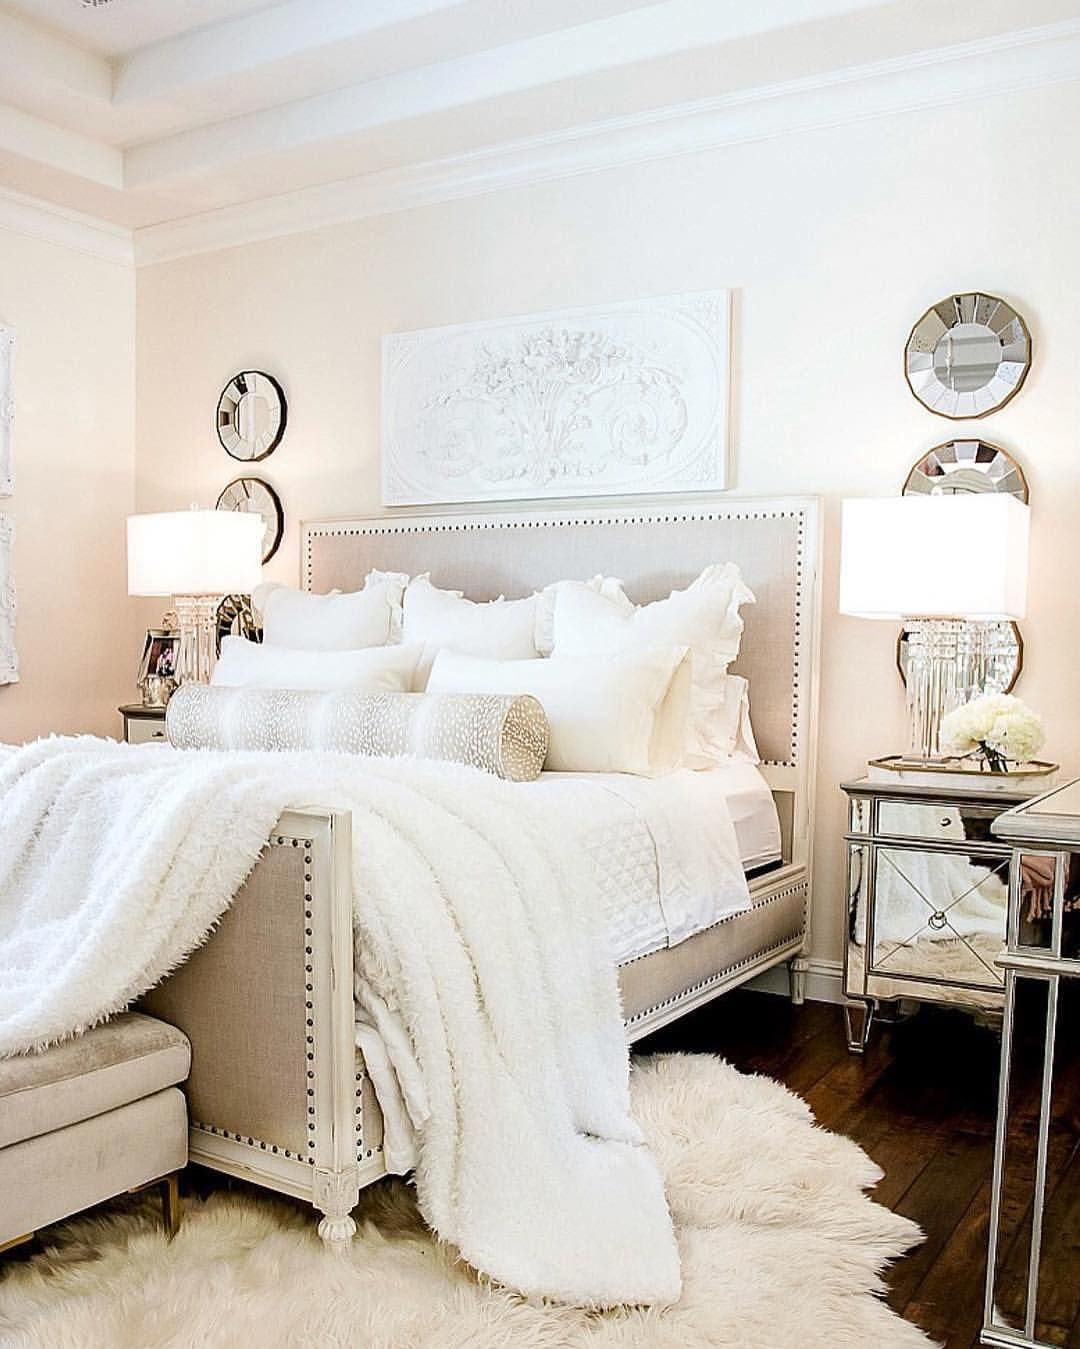 Modernistic Metallic Touch To Your Bedroom